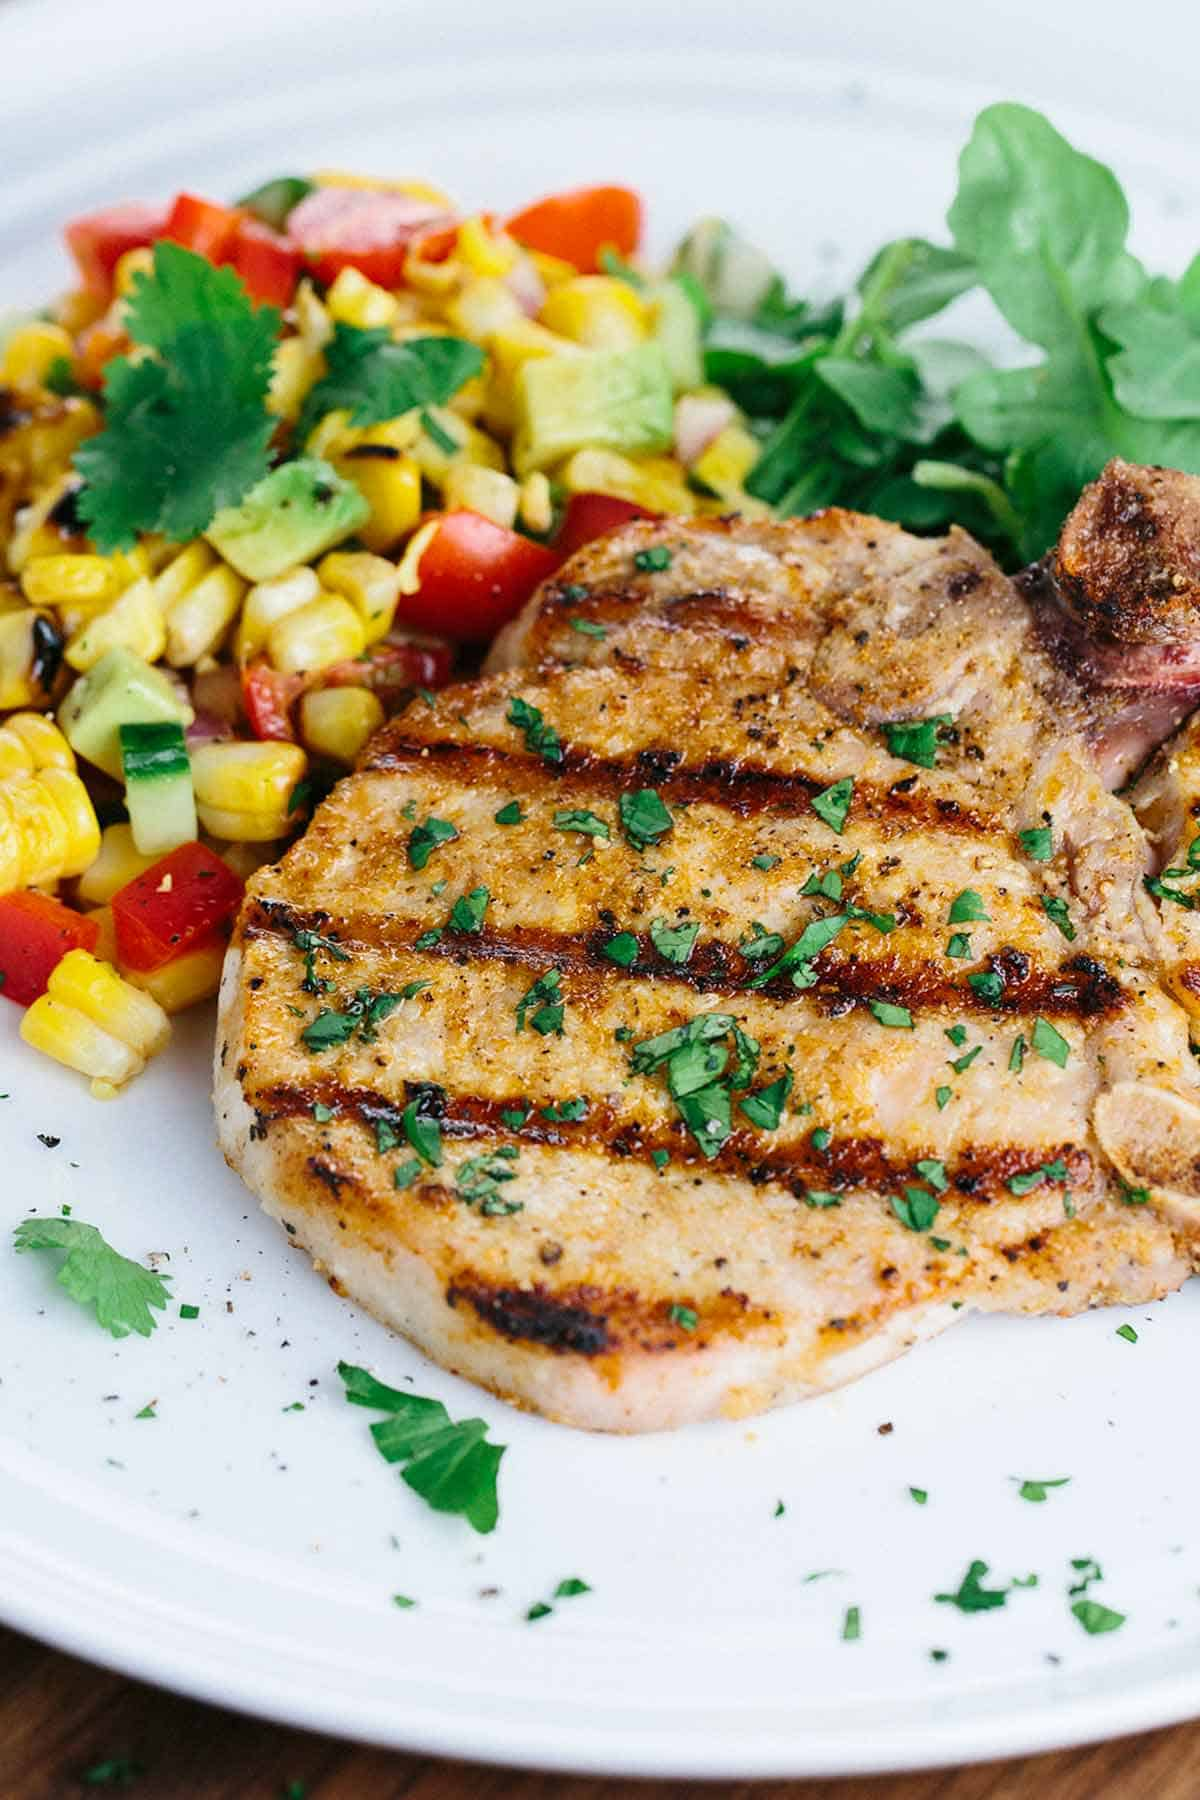 Spiced Grilled Pork Chops With Charred Corn Salad  Fire Up The Grill For A  Delicious